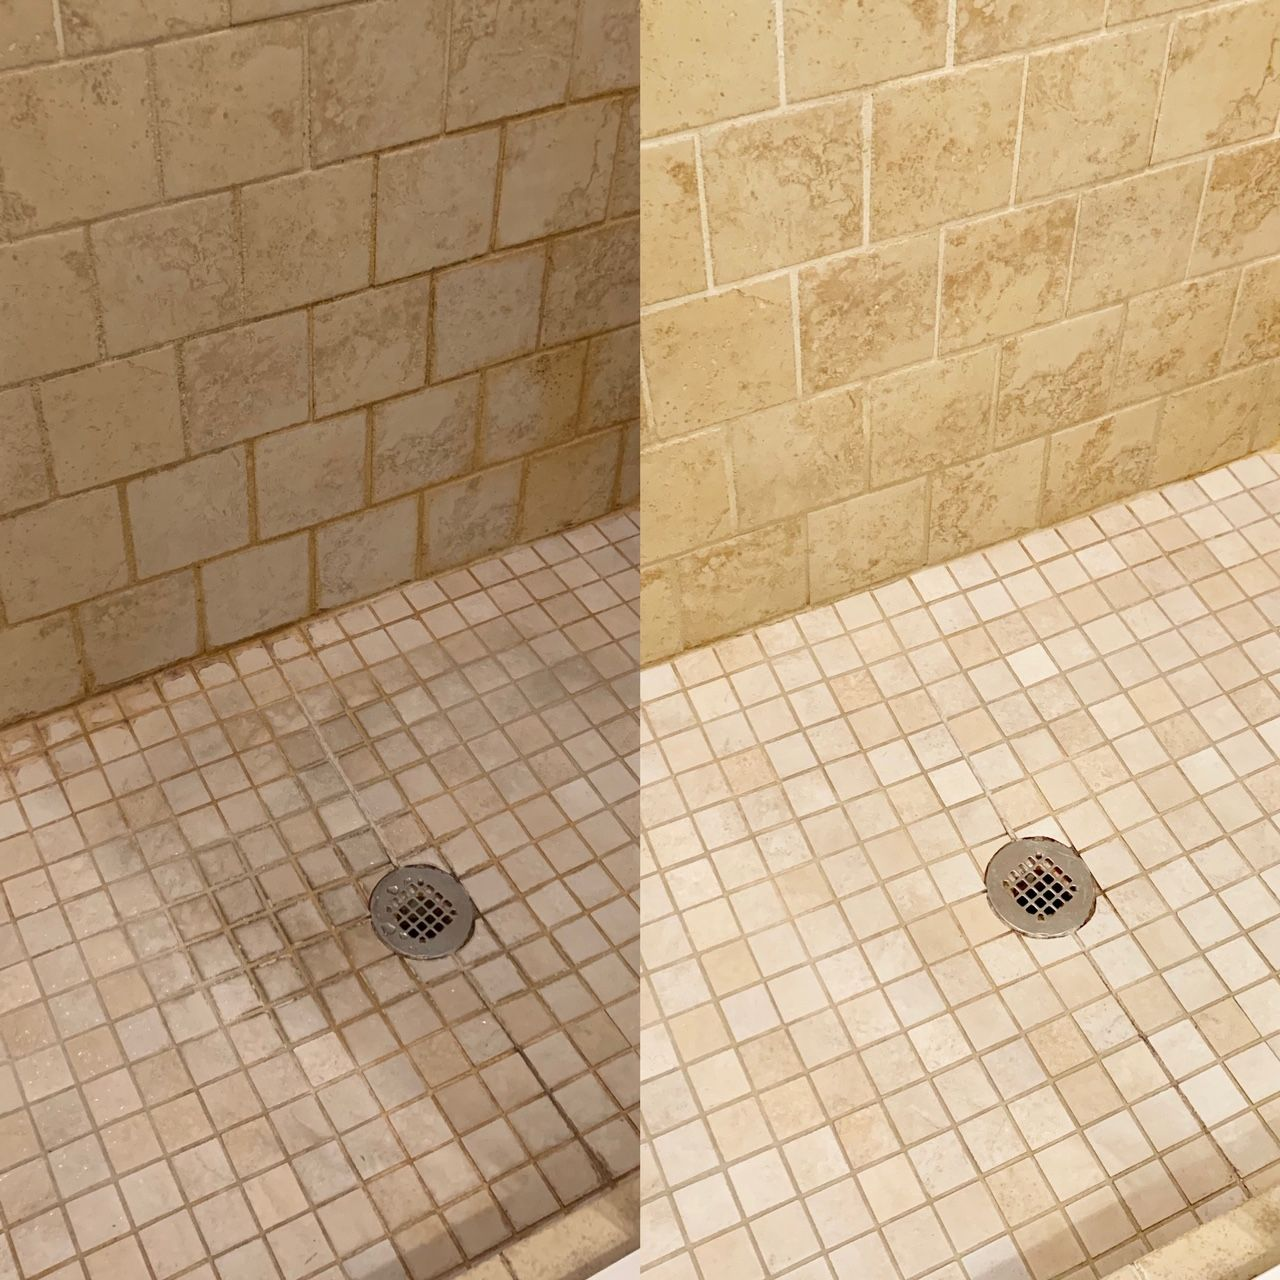 Stone & tile deep cleaning and restoration services